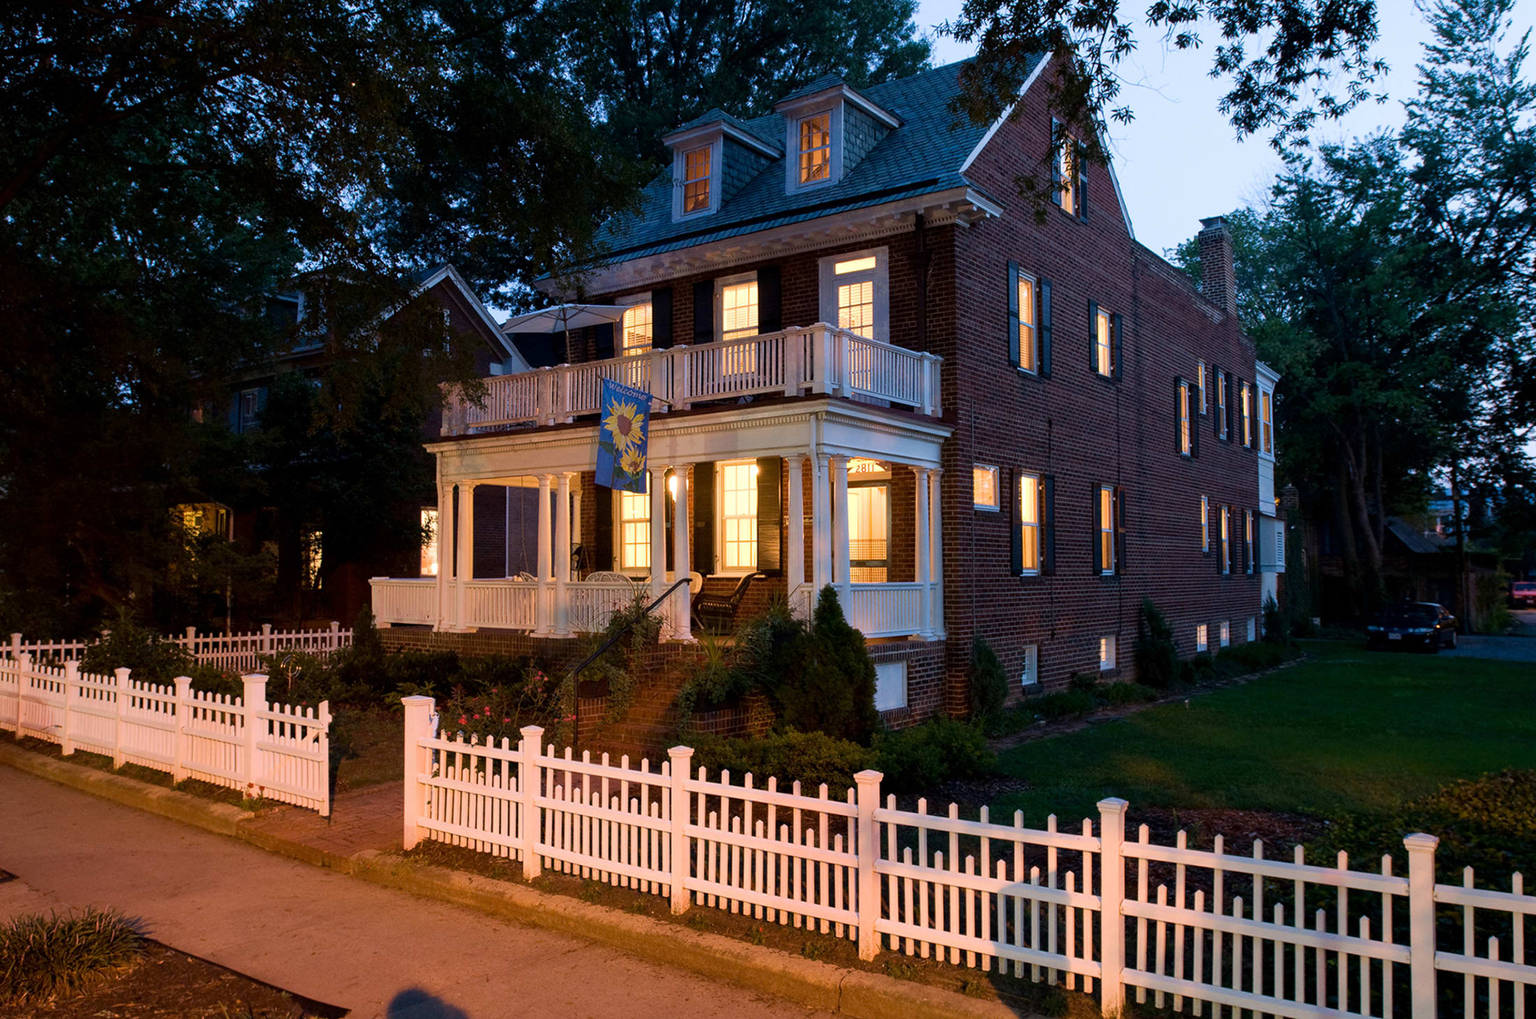 A house with a fence in front of a building at Museum District Bed & Breakfast.